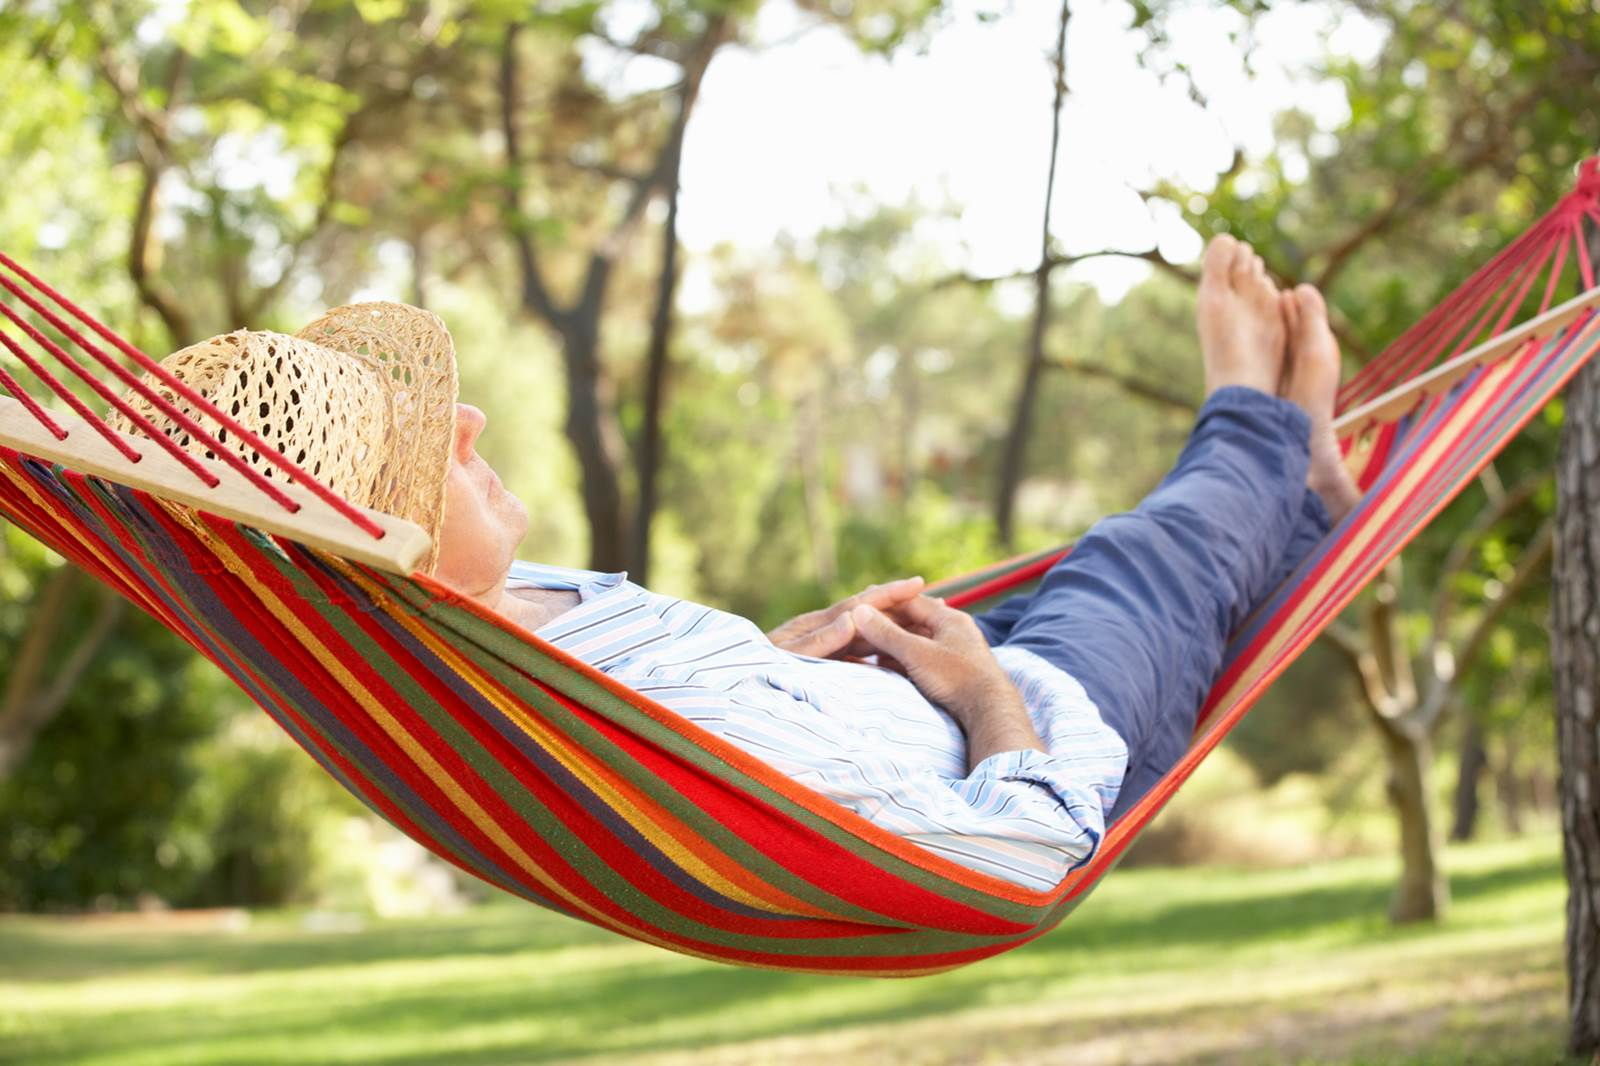 Feeling Lazy? How About Going on a Lazy Holiday? - Thomas Cook Blog